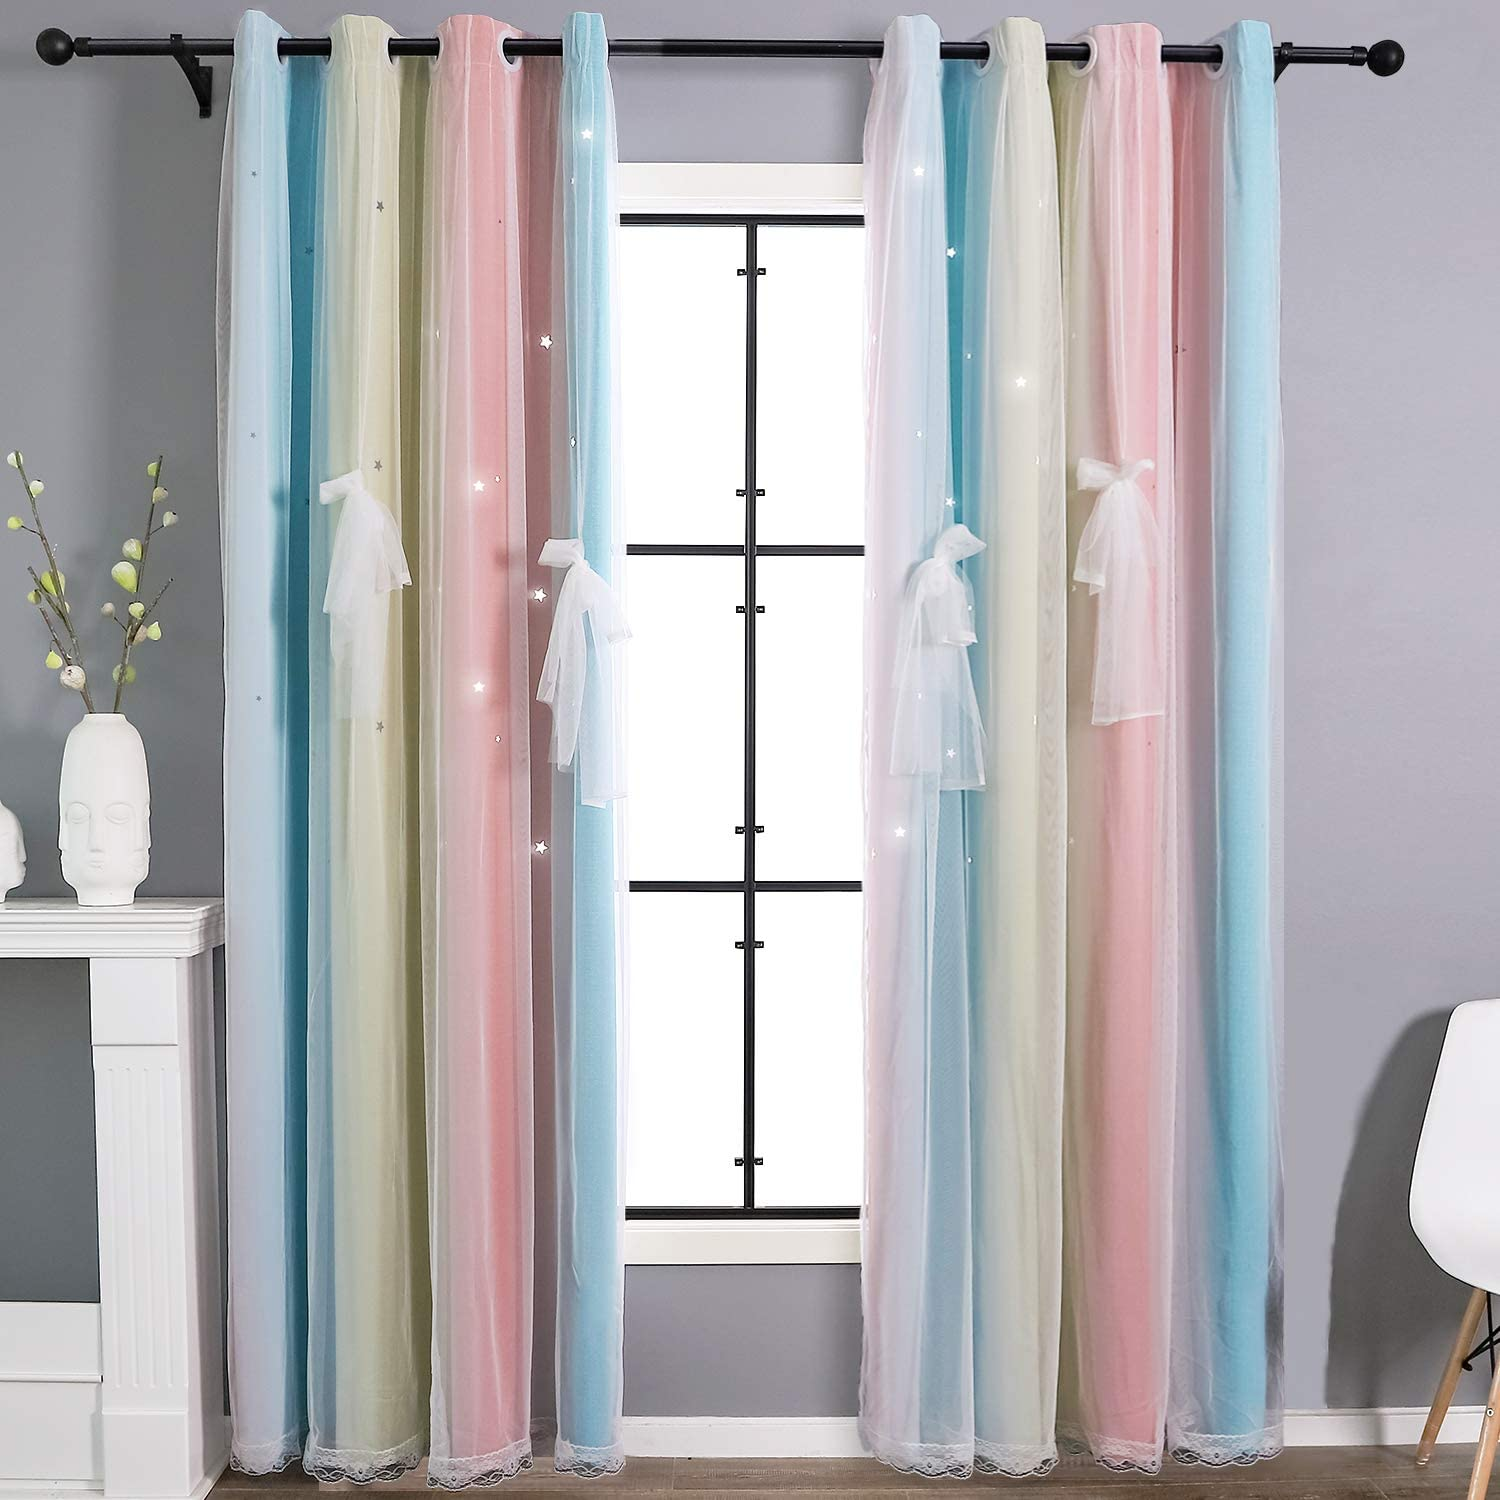 STFLY 2 Panels Star Curtains for Girls Bedroom, Room Darkening Kids Blackout Curtains Double Layer Tulle Overlay Rainbow Lace Curtain Room Decor Drapes (Stripe Rainbow, 52W x 84L)